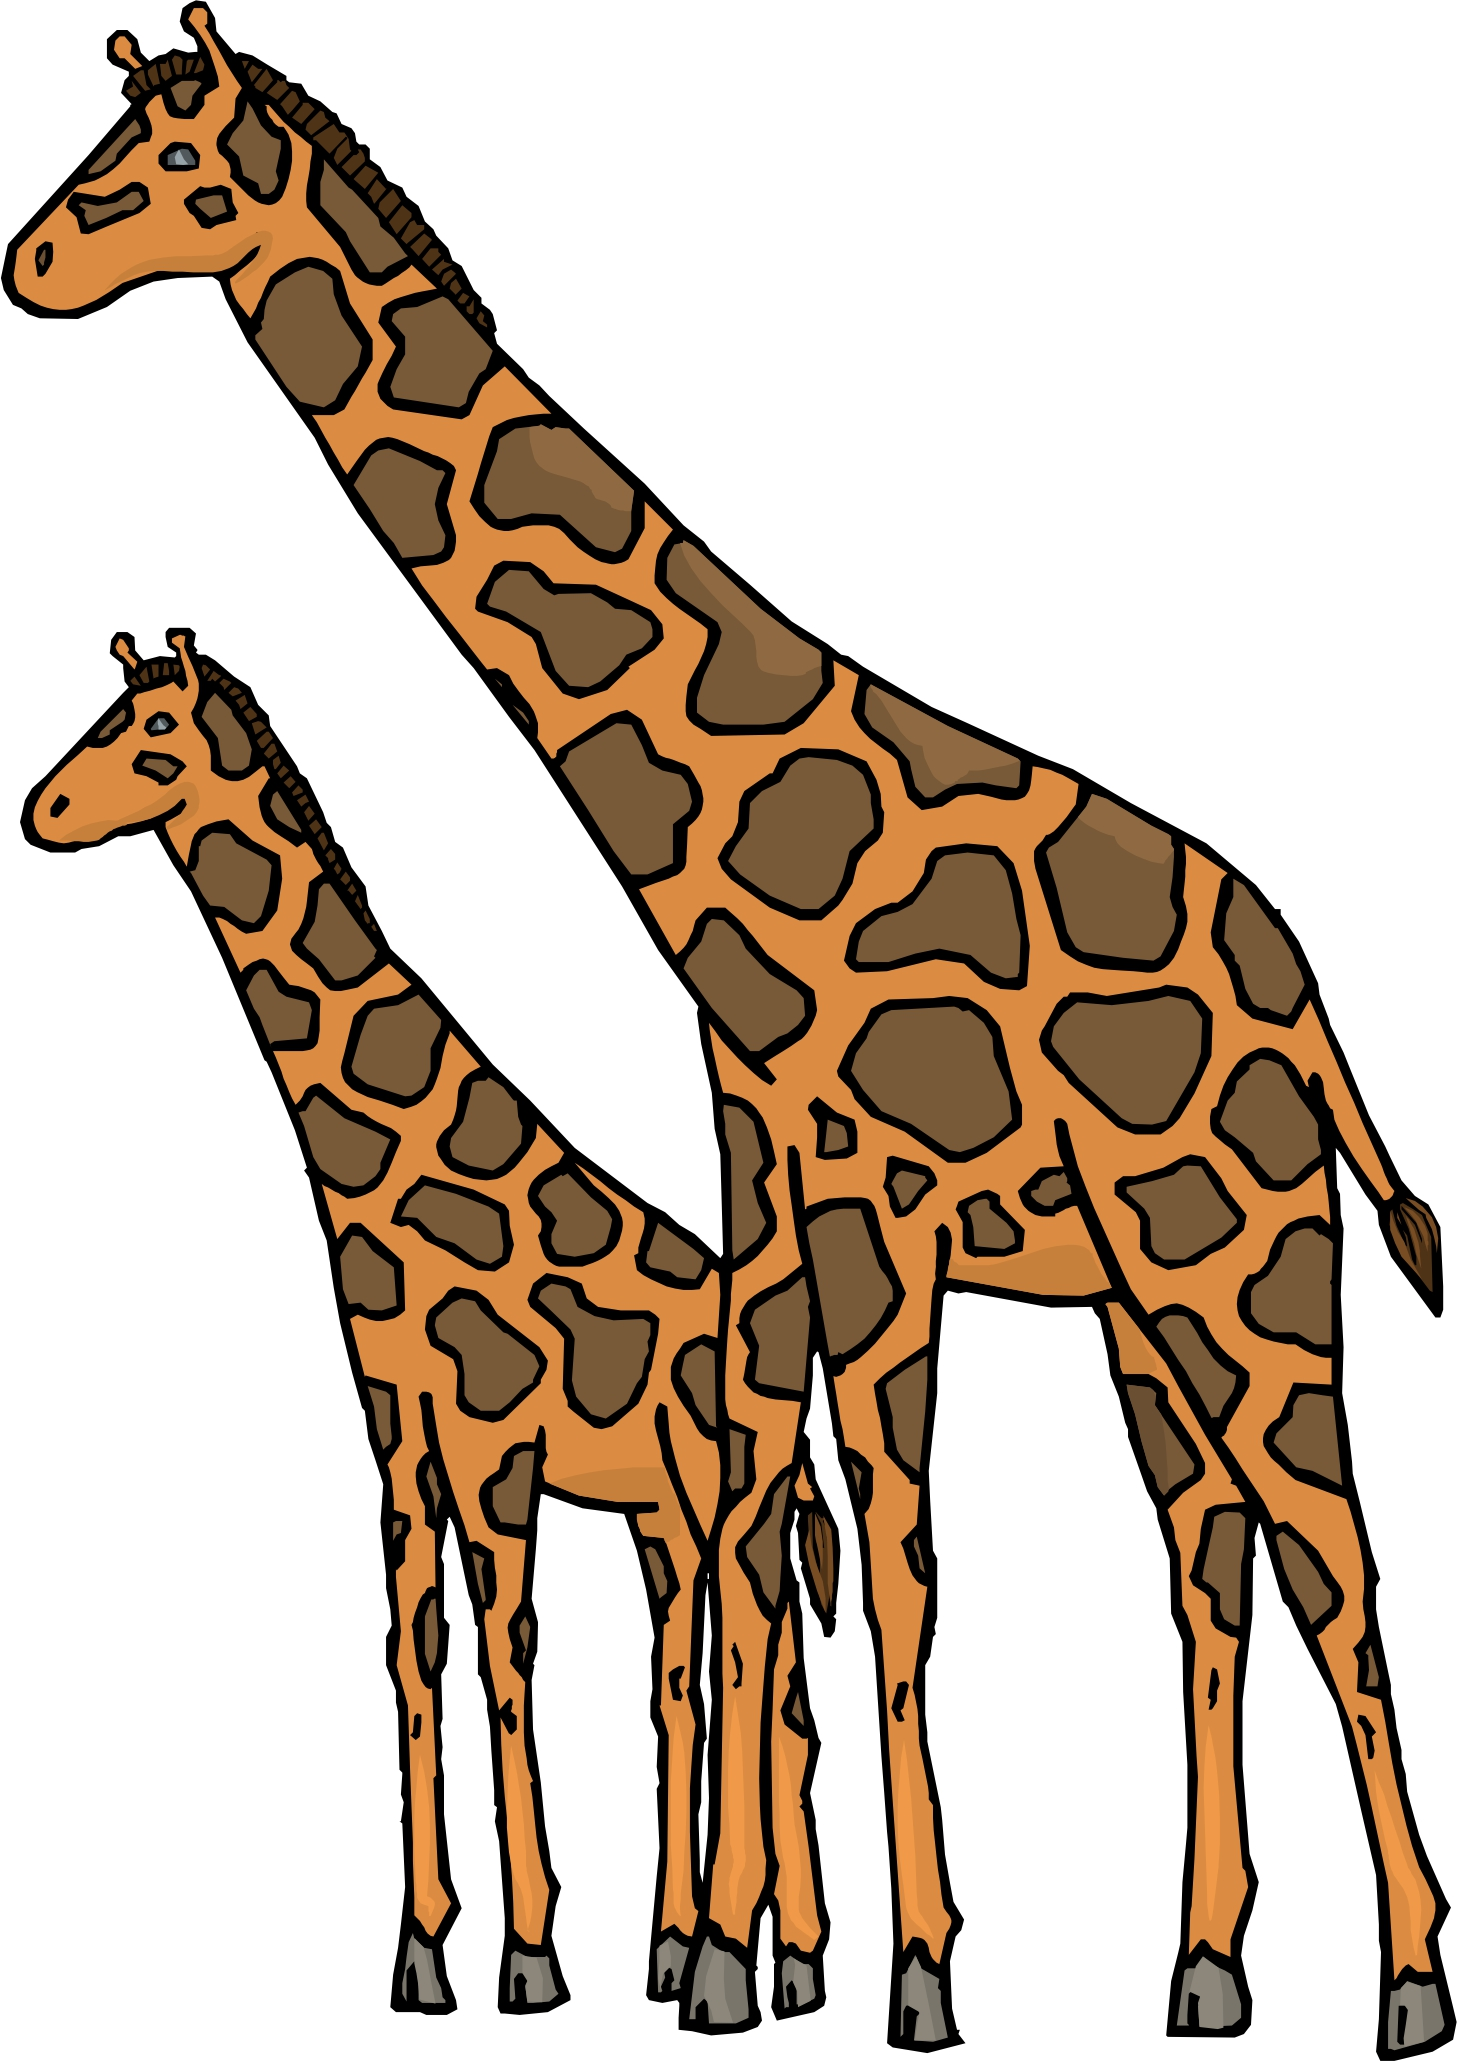 Cartoon Giraffes.